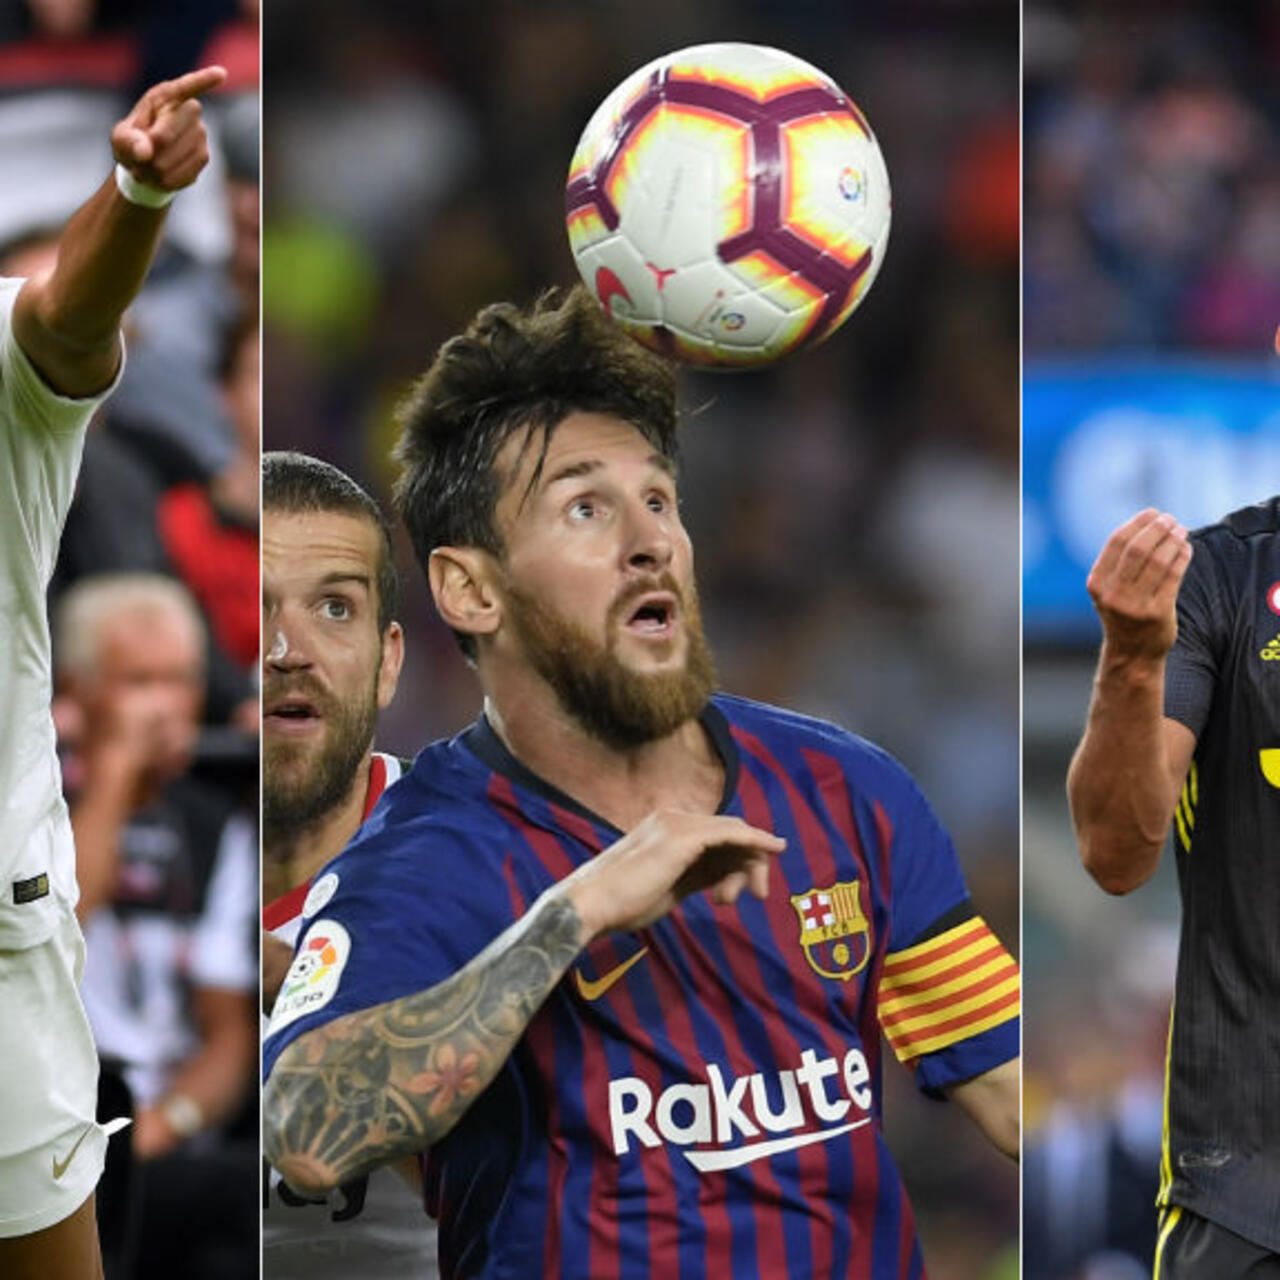 Ronaldo, Mbappé, Messi - a winning debut in European competitions